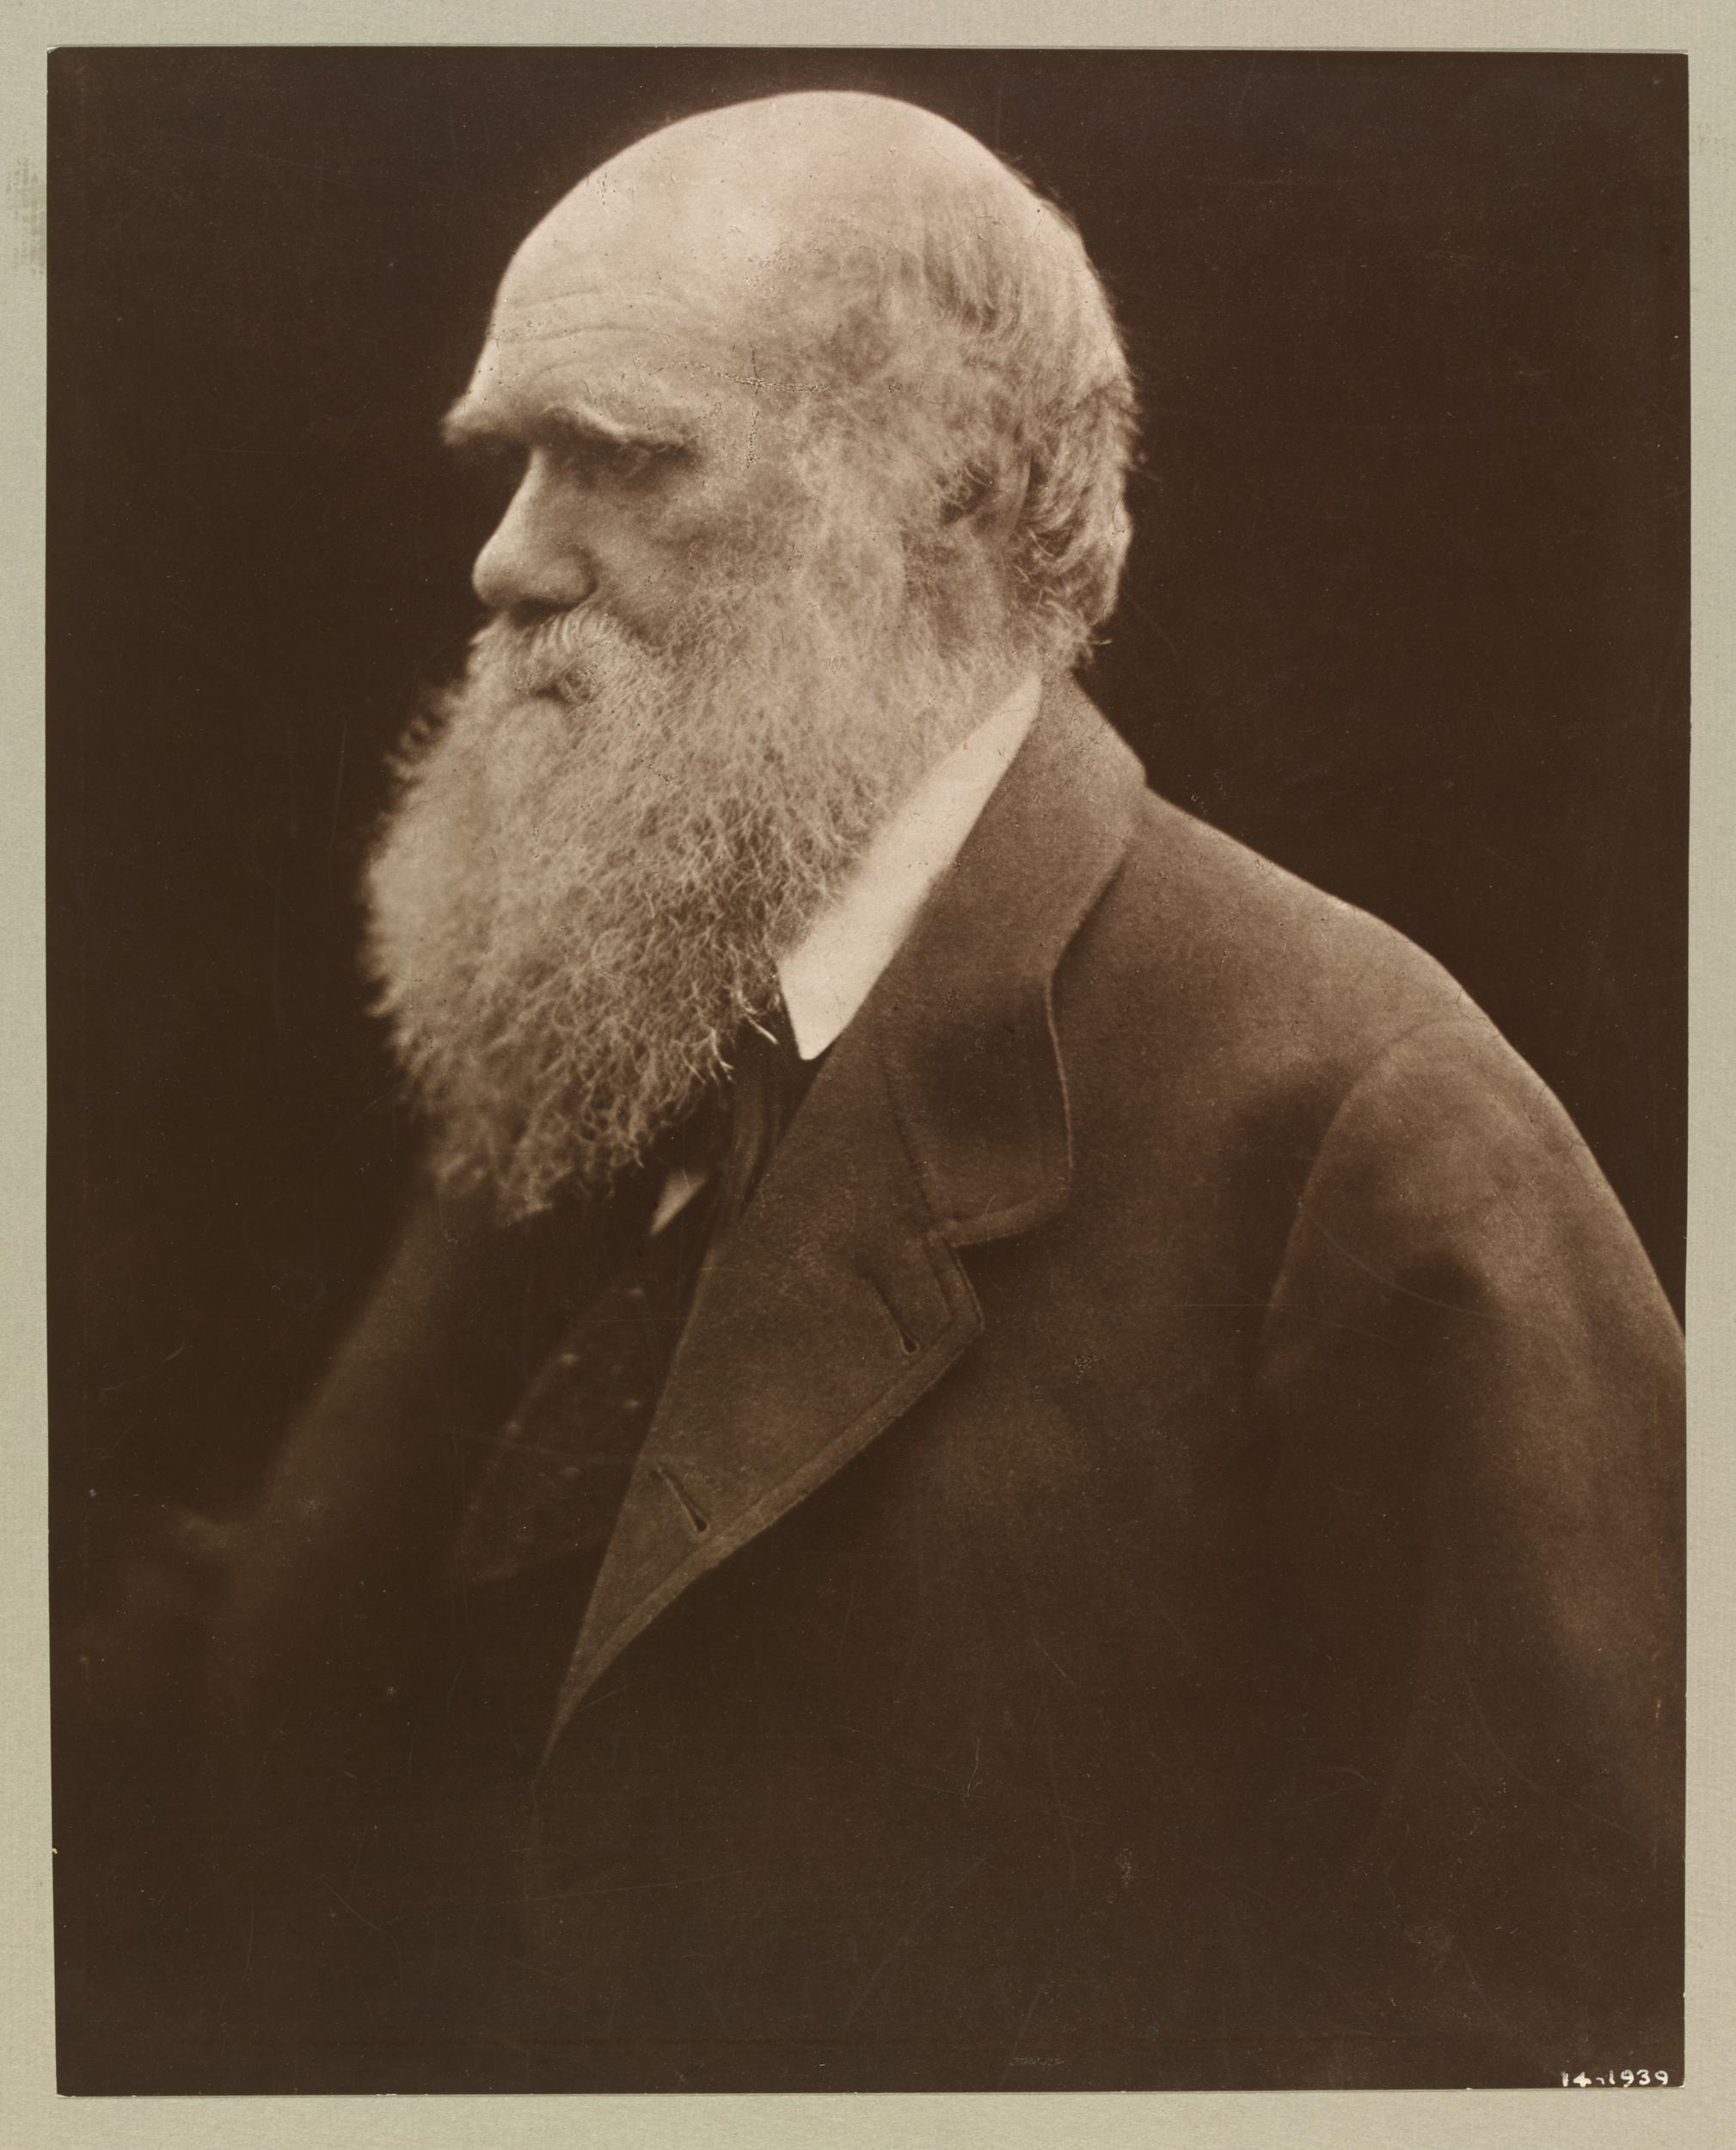 Photo of Charles Darwin by Julia Margaret Cameron